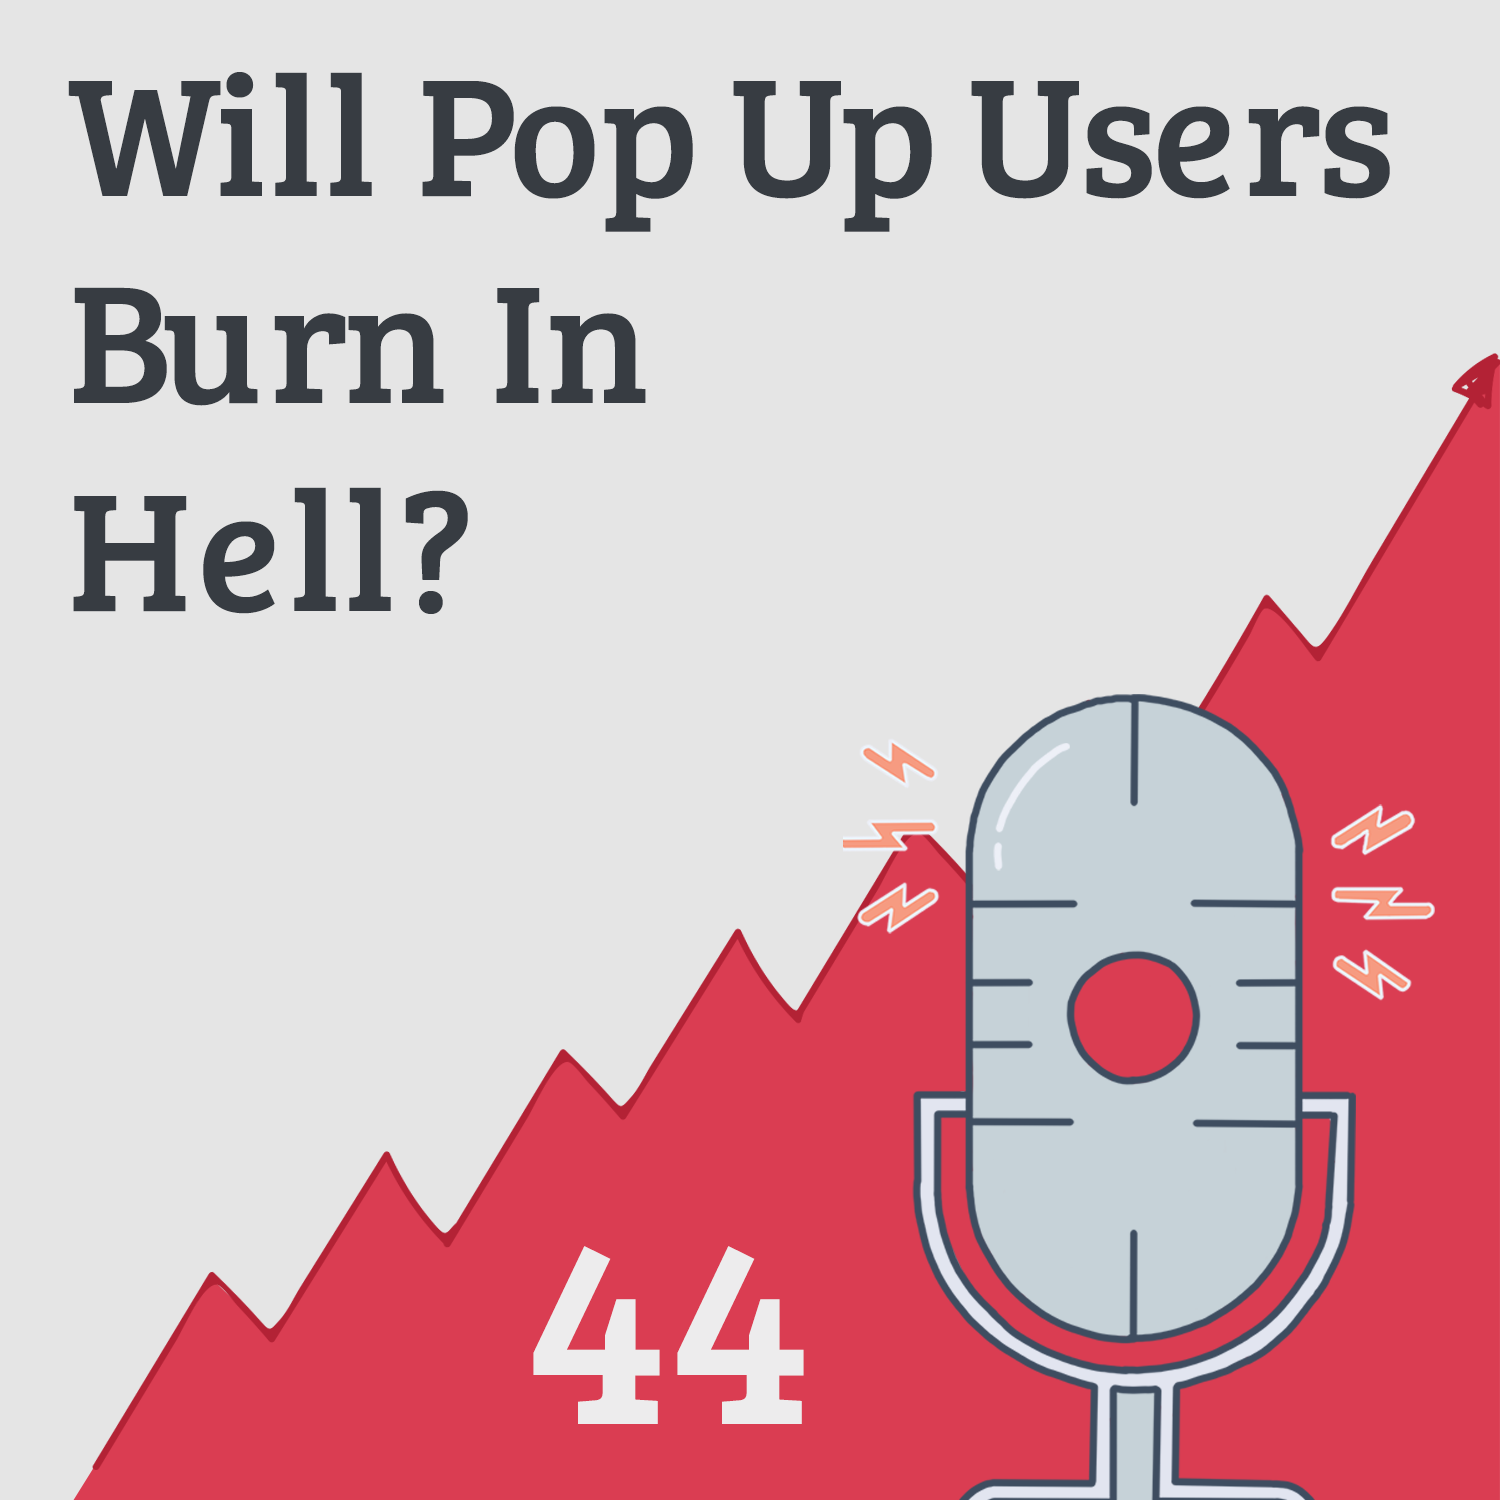 Ethical Marketing aka Will Pop Up Users Burn In Hell?